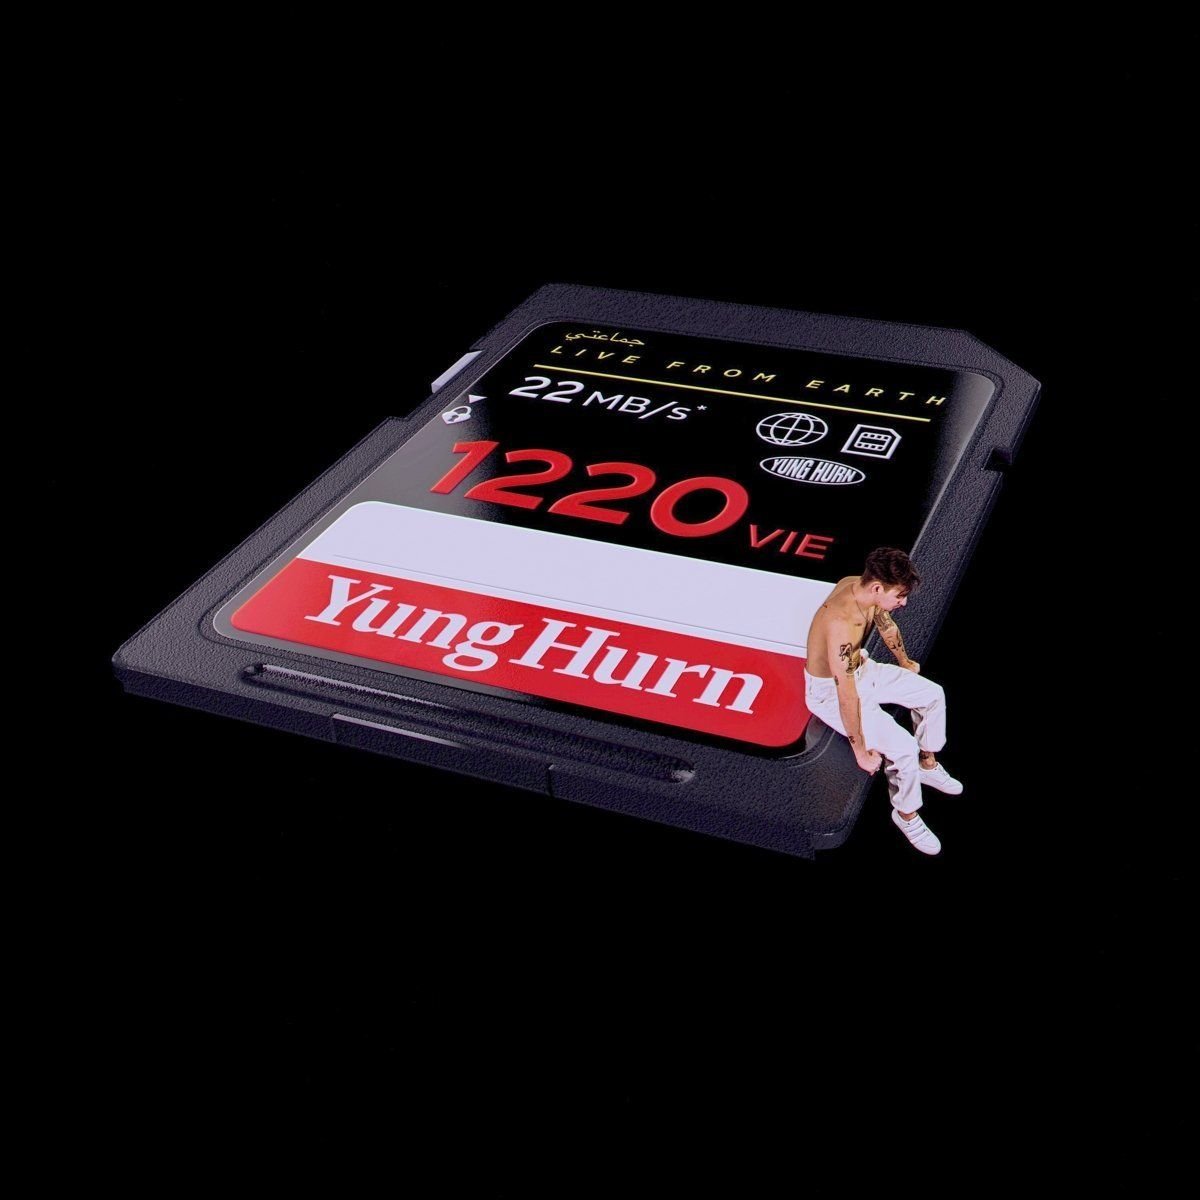 Yung Hurn - 1220 album cover